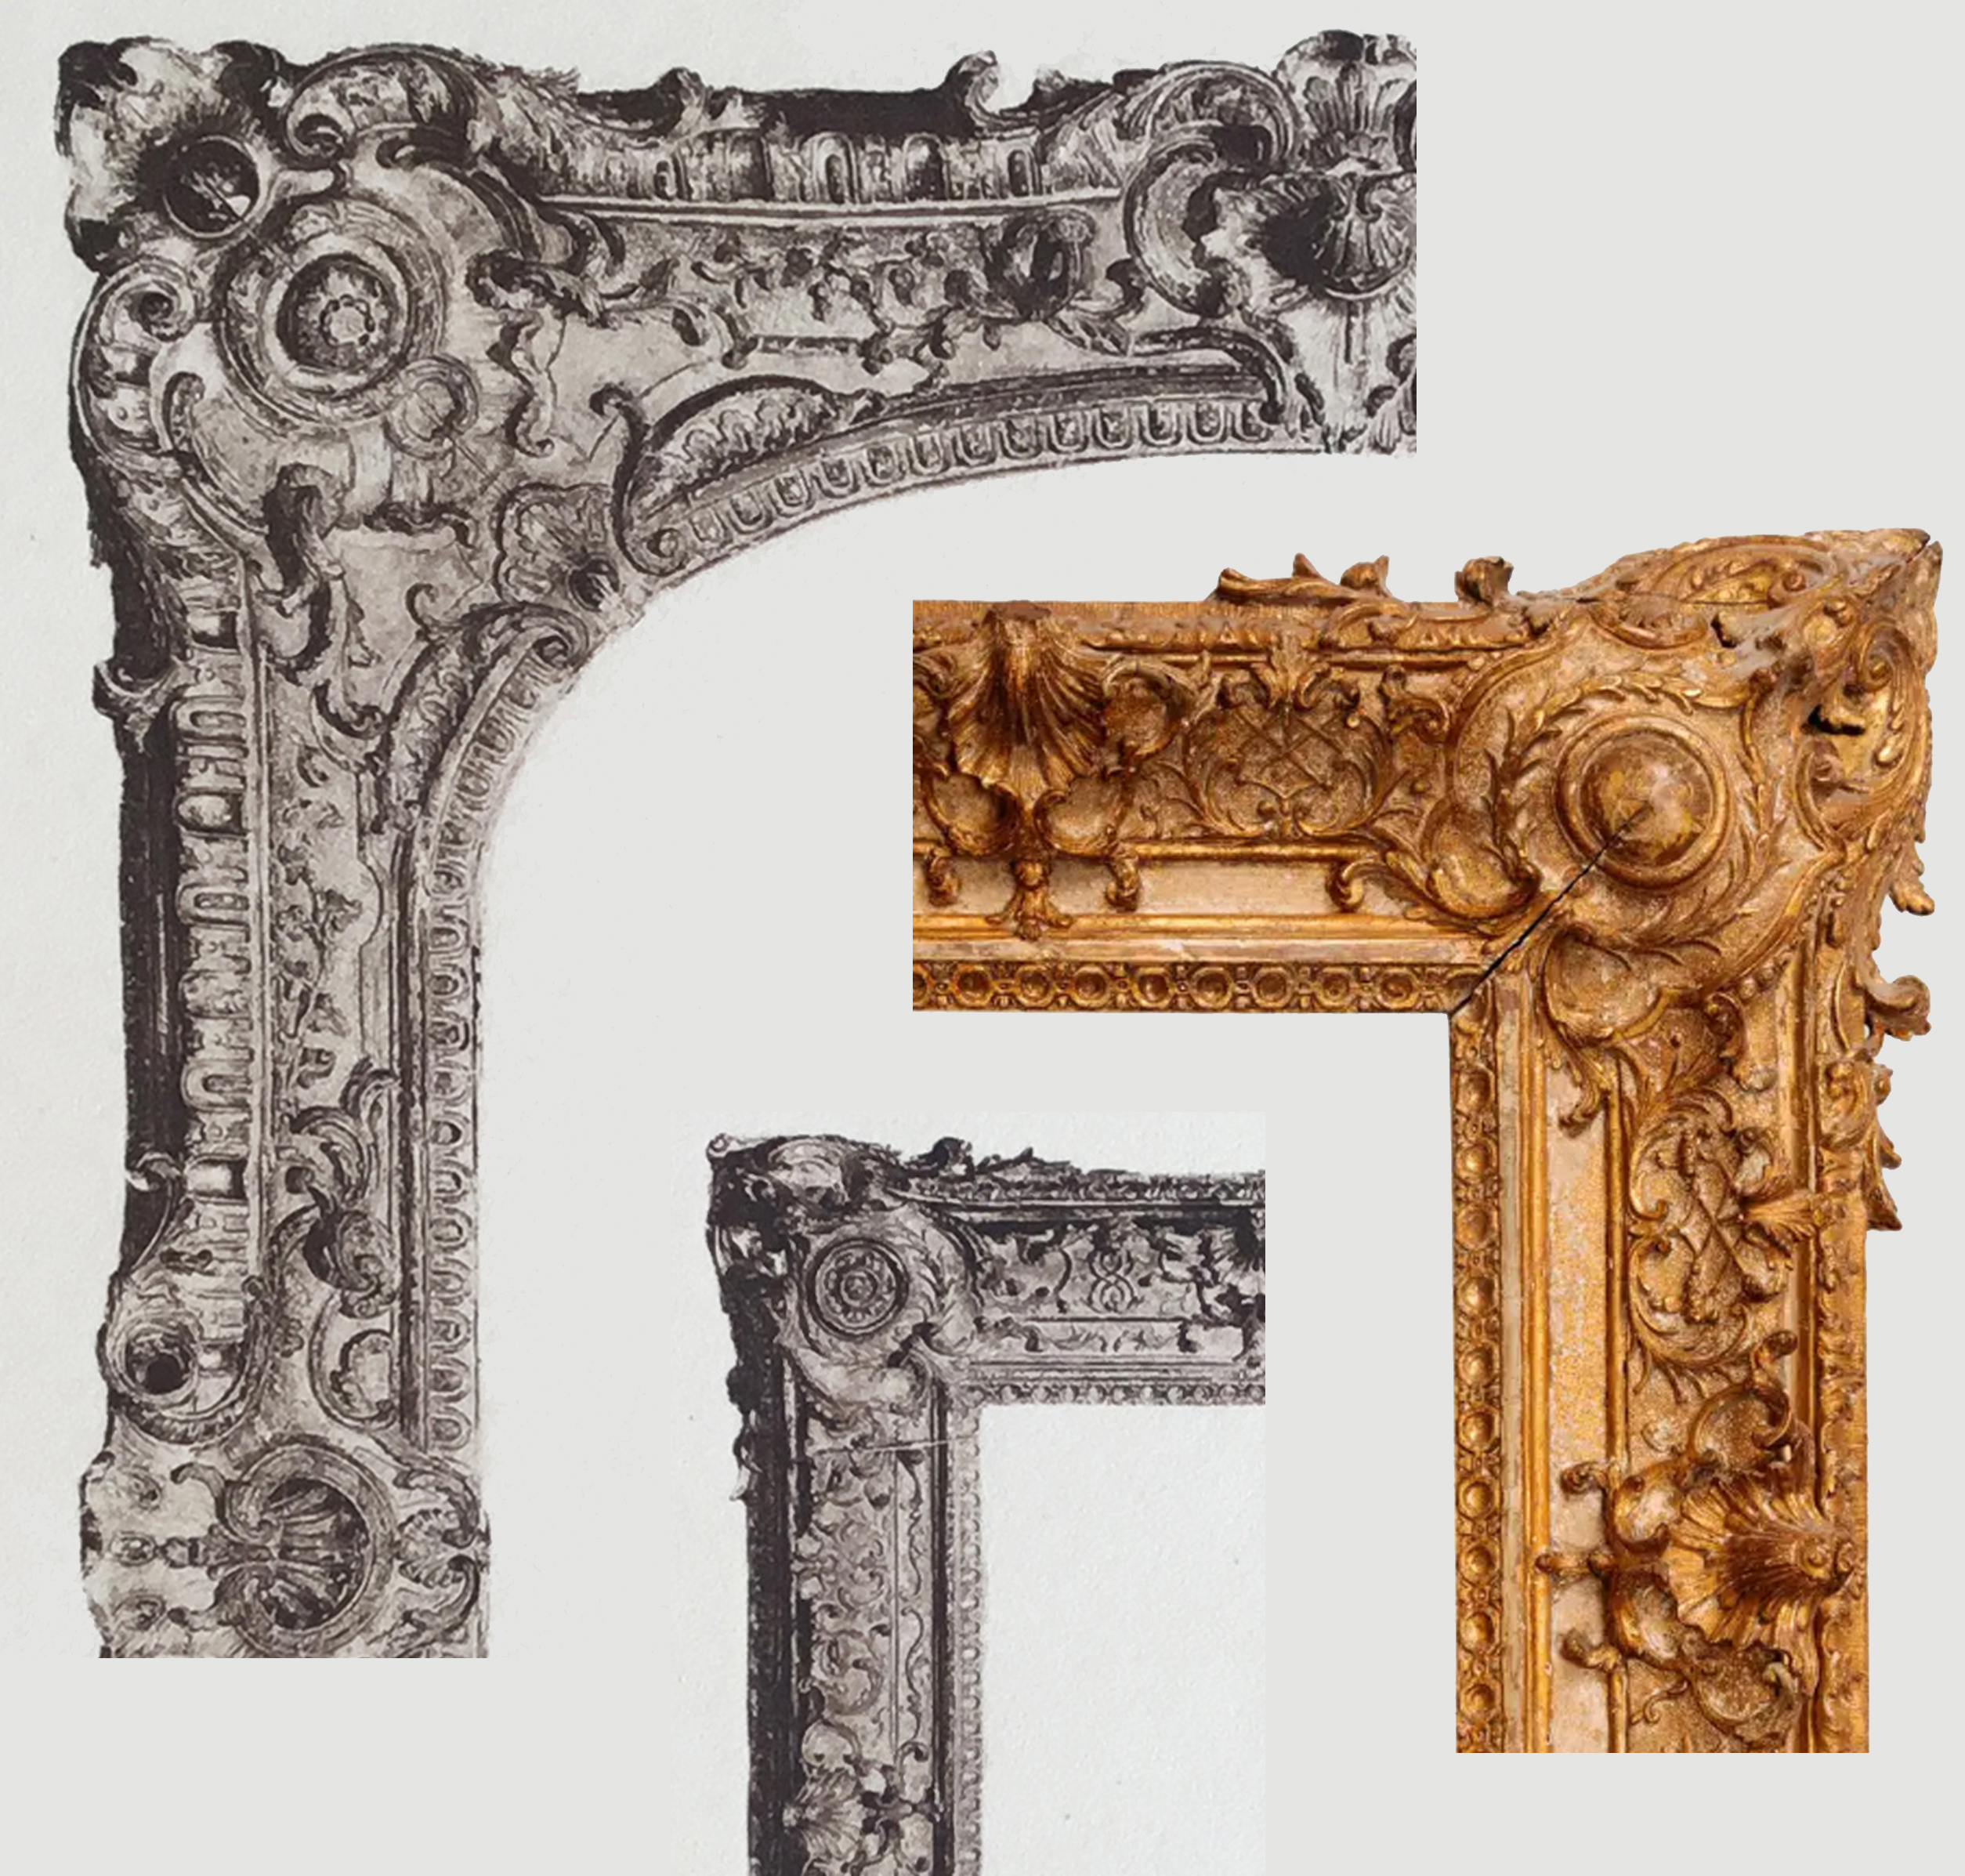 13C Details of Plate 41 & of French Régence frame